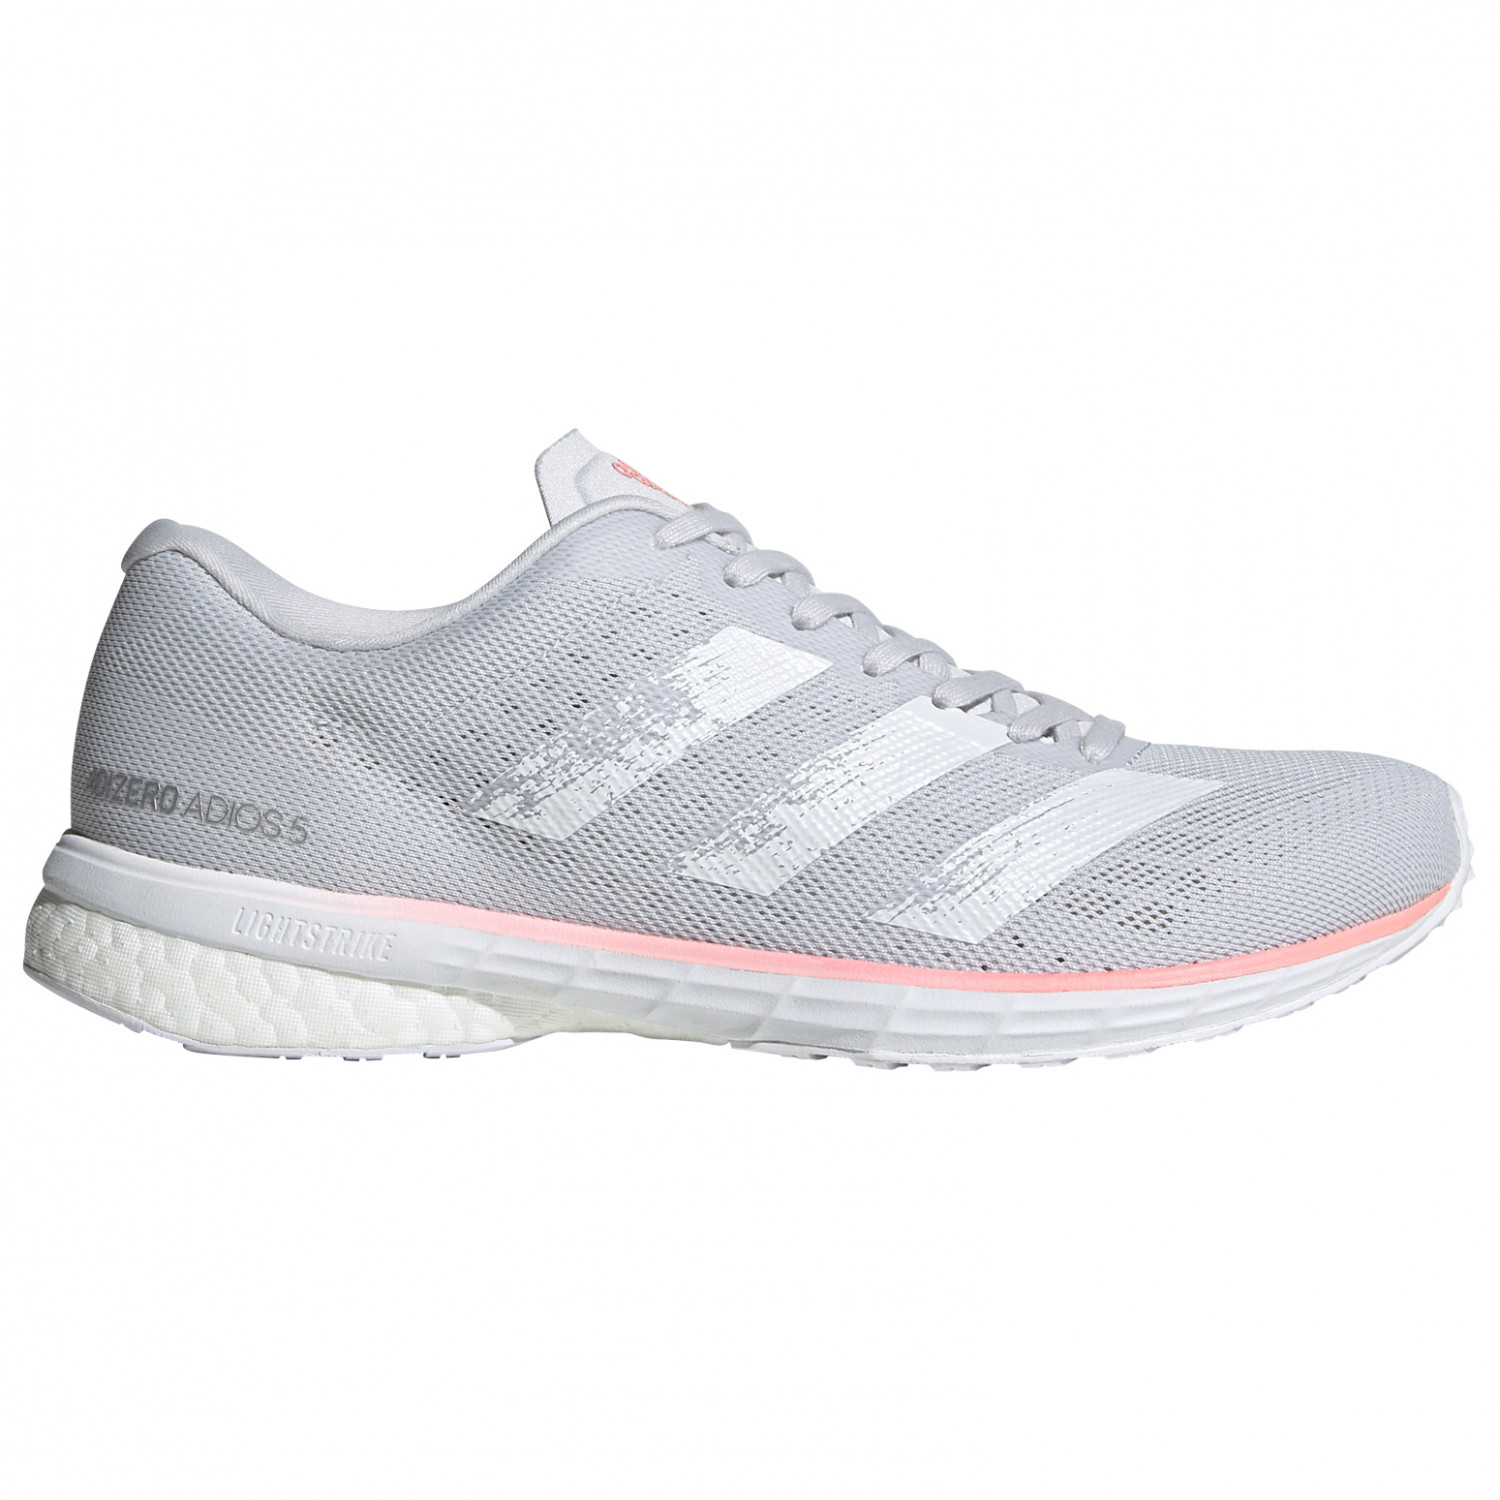 adidas - Women's Adizero Adios 5 - Running shoes - Dash Grey / Ftwr White /  Glory Pink | 4 (UK)